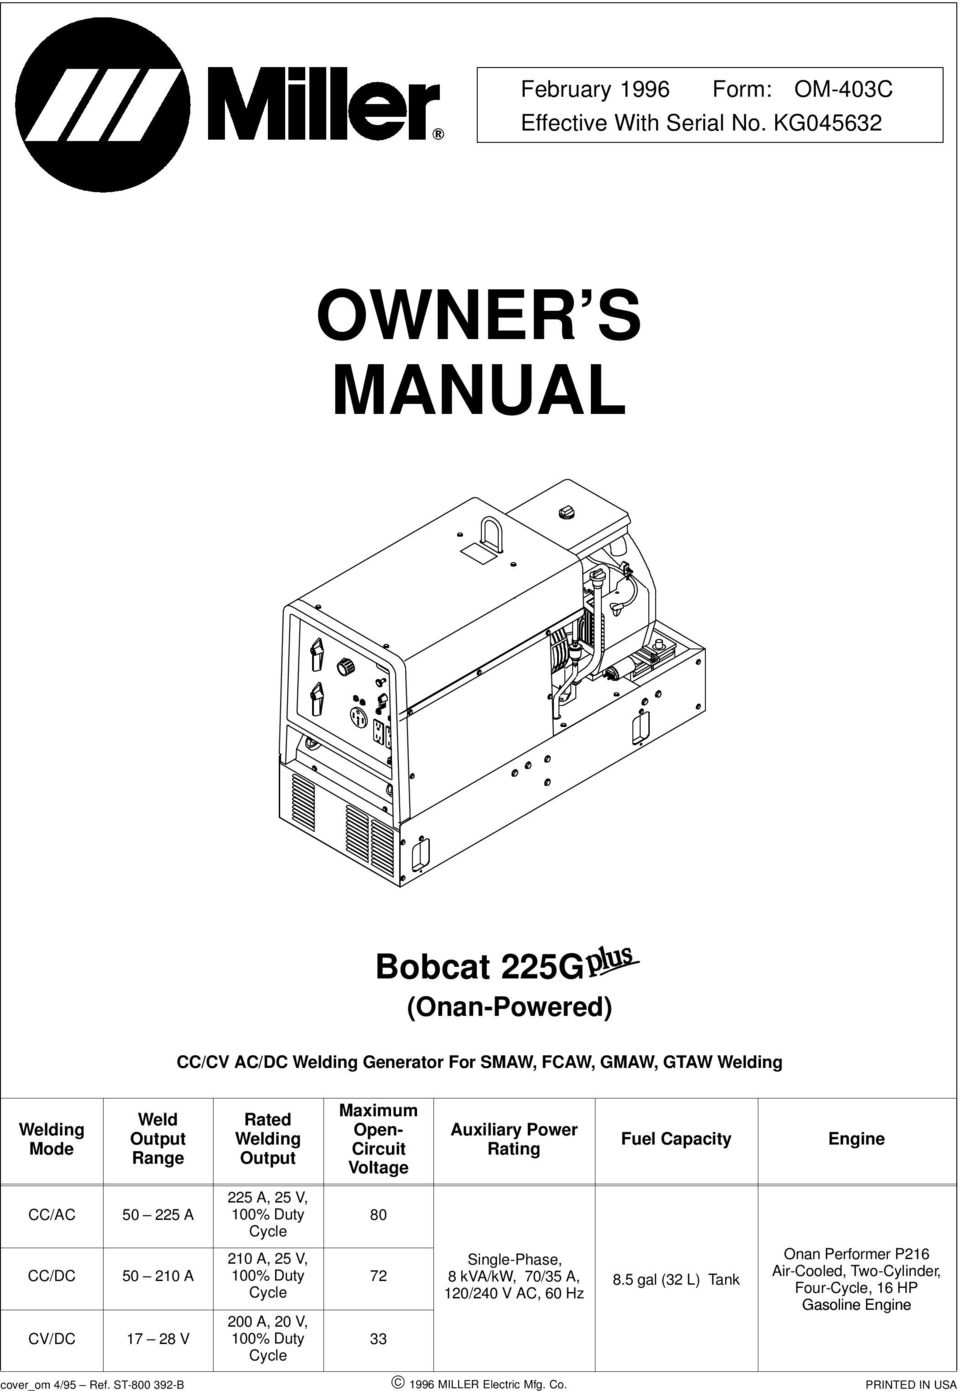 Owner S Manual Bobcat 225g Onan Powered Cc Cv Ac Dc Welding Generator Diagram Output Maximum Open Circuit Voltage Auxiliary Power Rating Fuel Capacity Engine